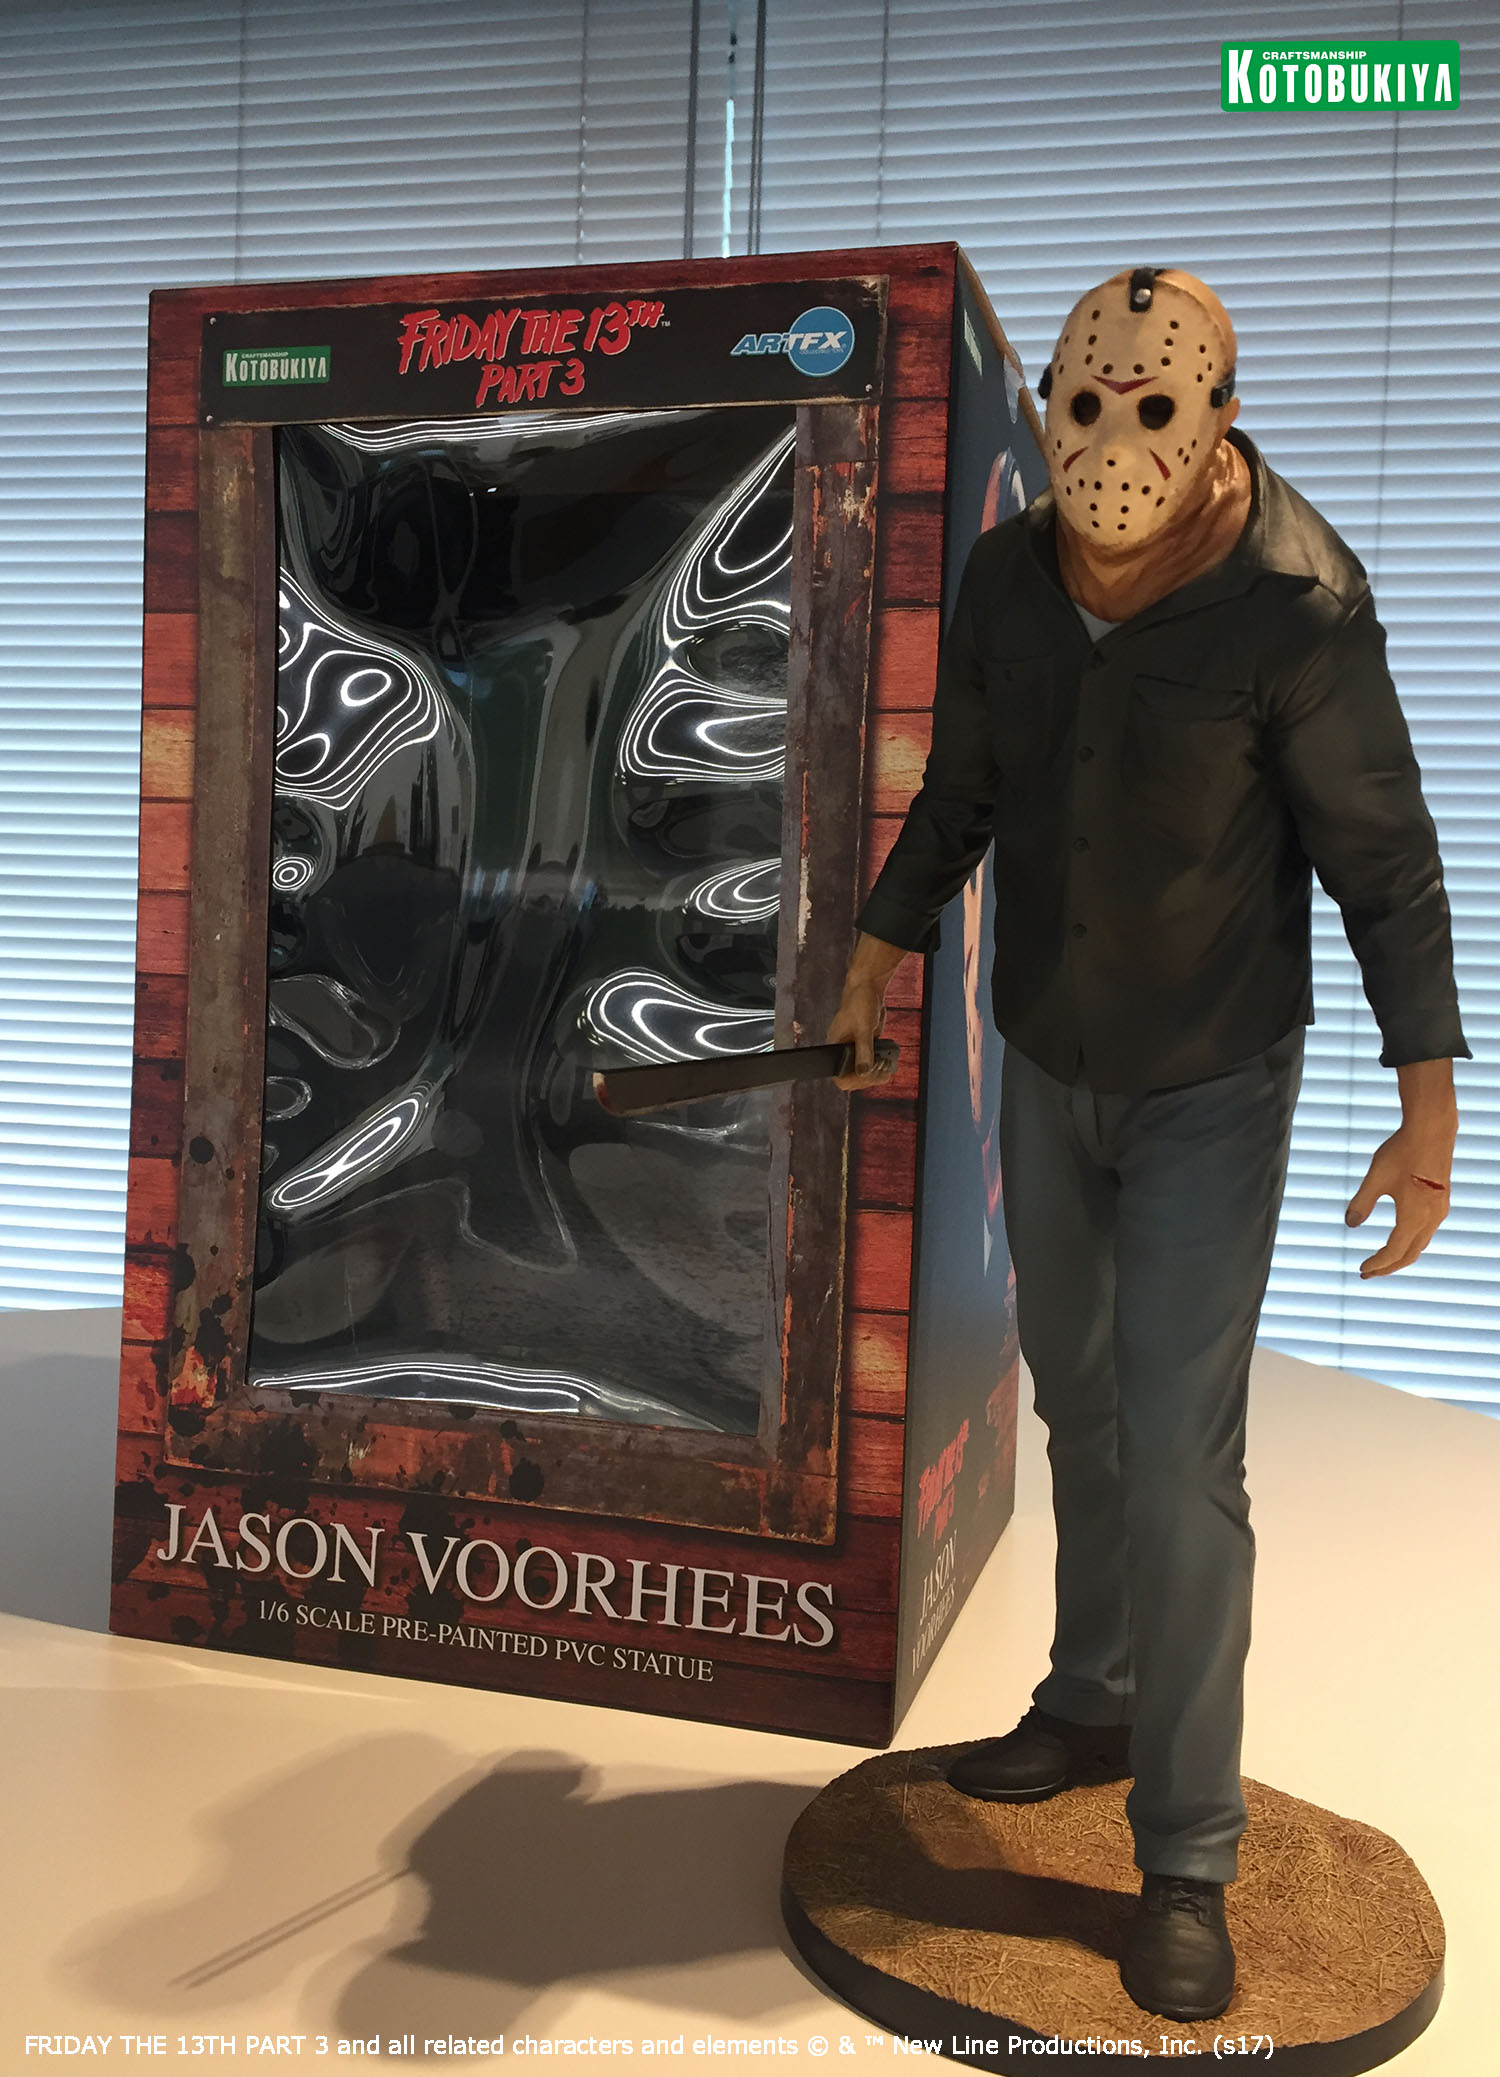 Kotobukiya - ARTFX Statue - Friday the 13th Part III - Jason Voorhees - 1/6 28 cm